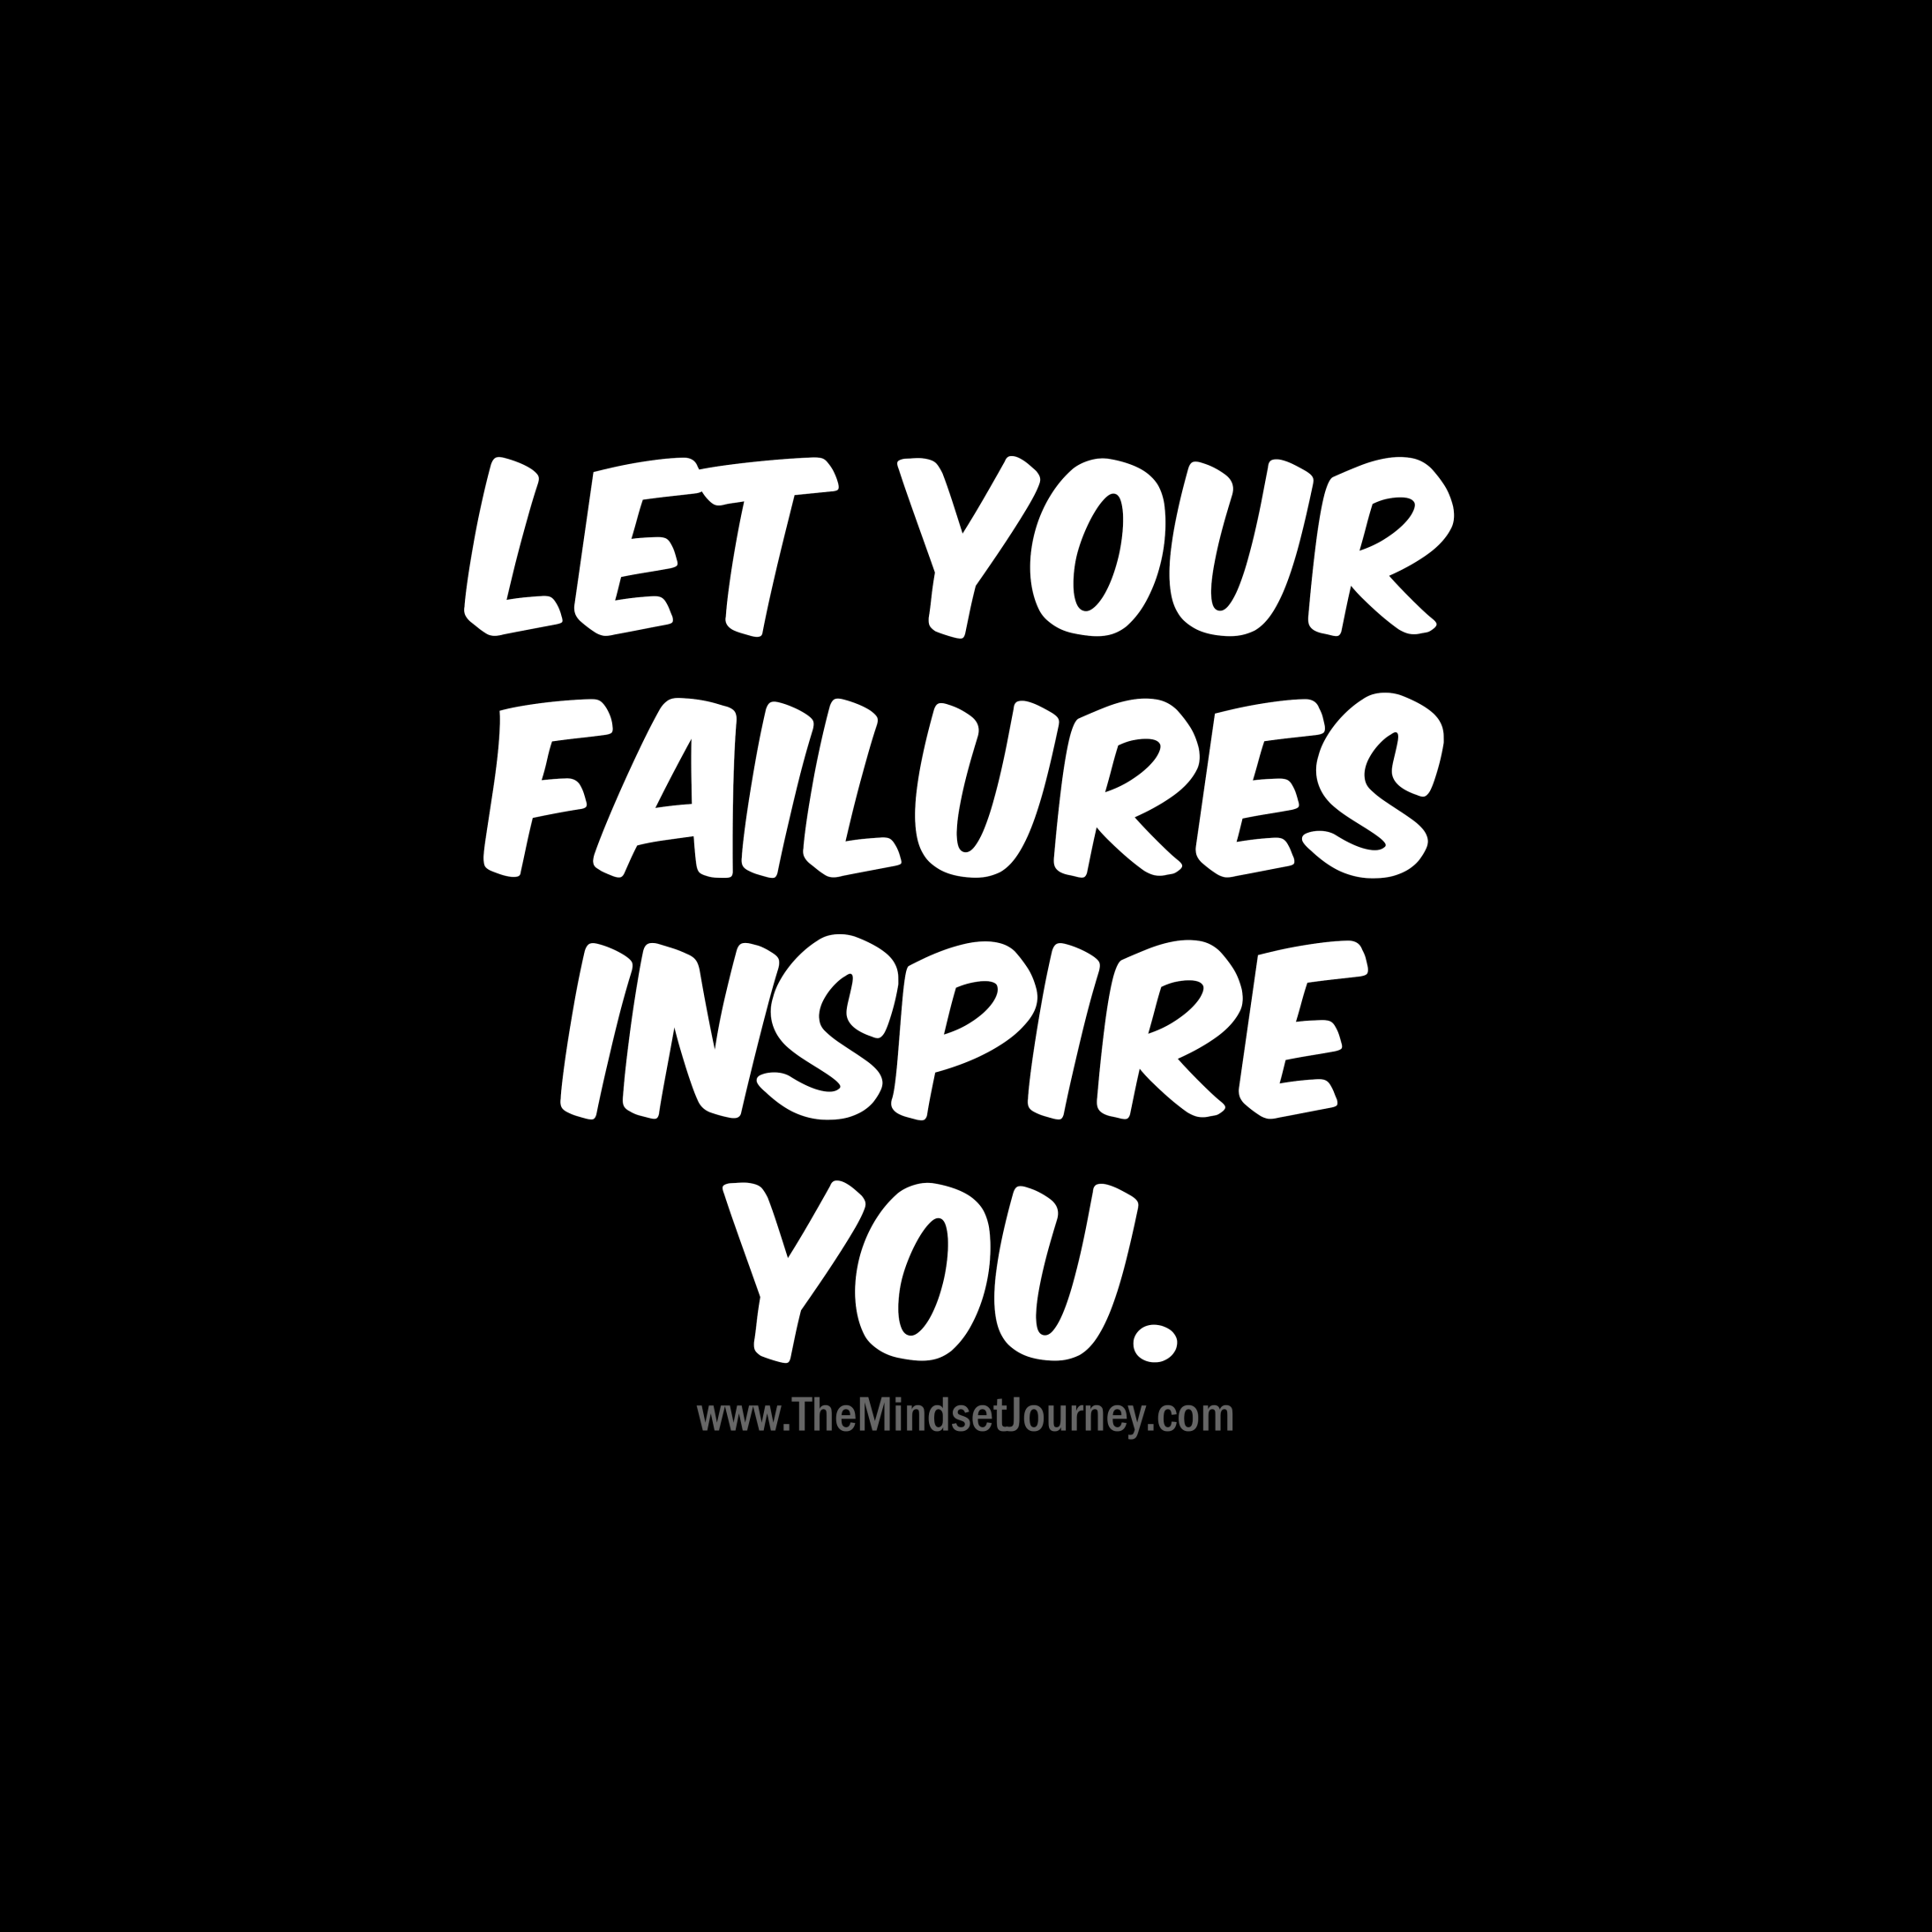 Let your failures inspire you. – The Mindset Journey